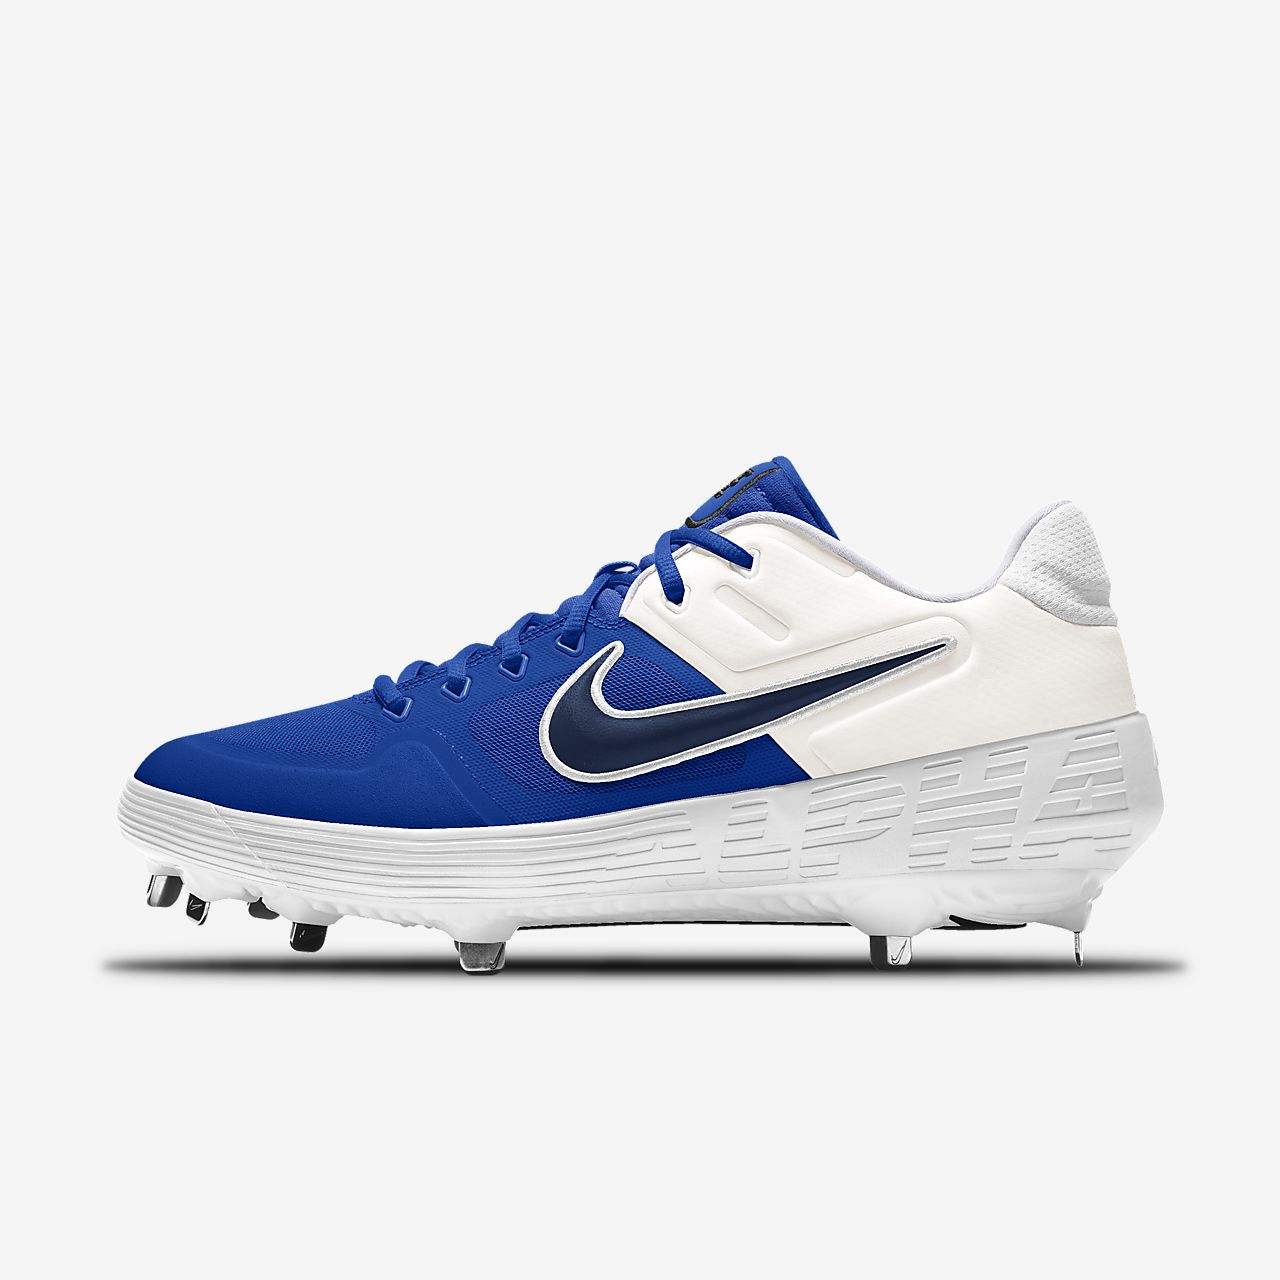 Calzado de béisbol personalizado Nike Alpha Huarache Elite 2 Low By You